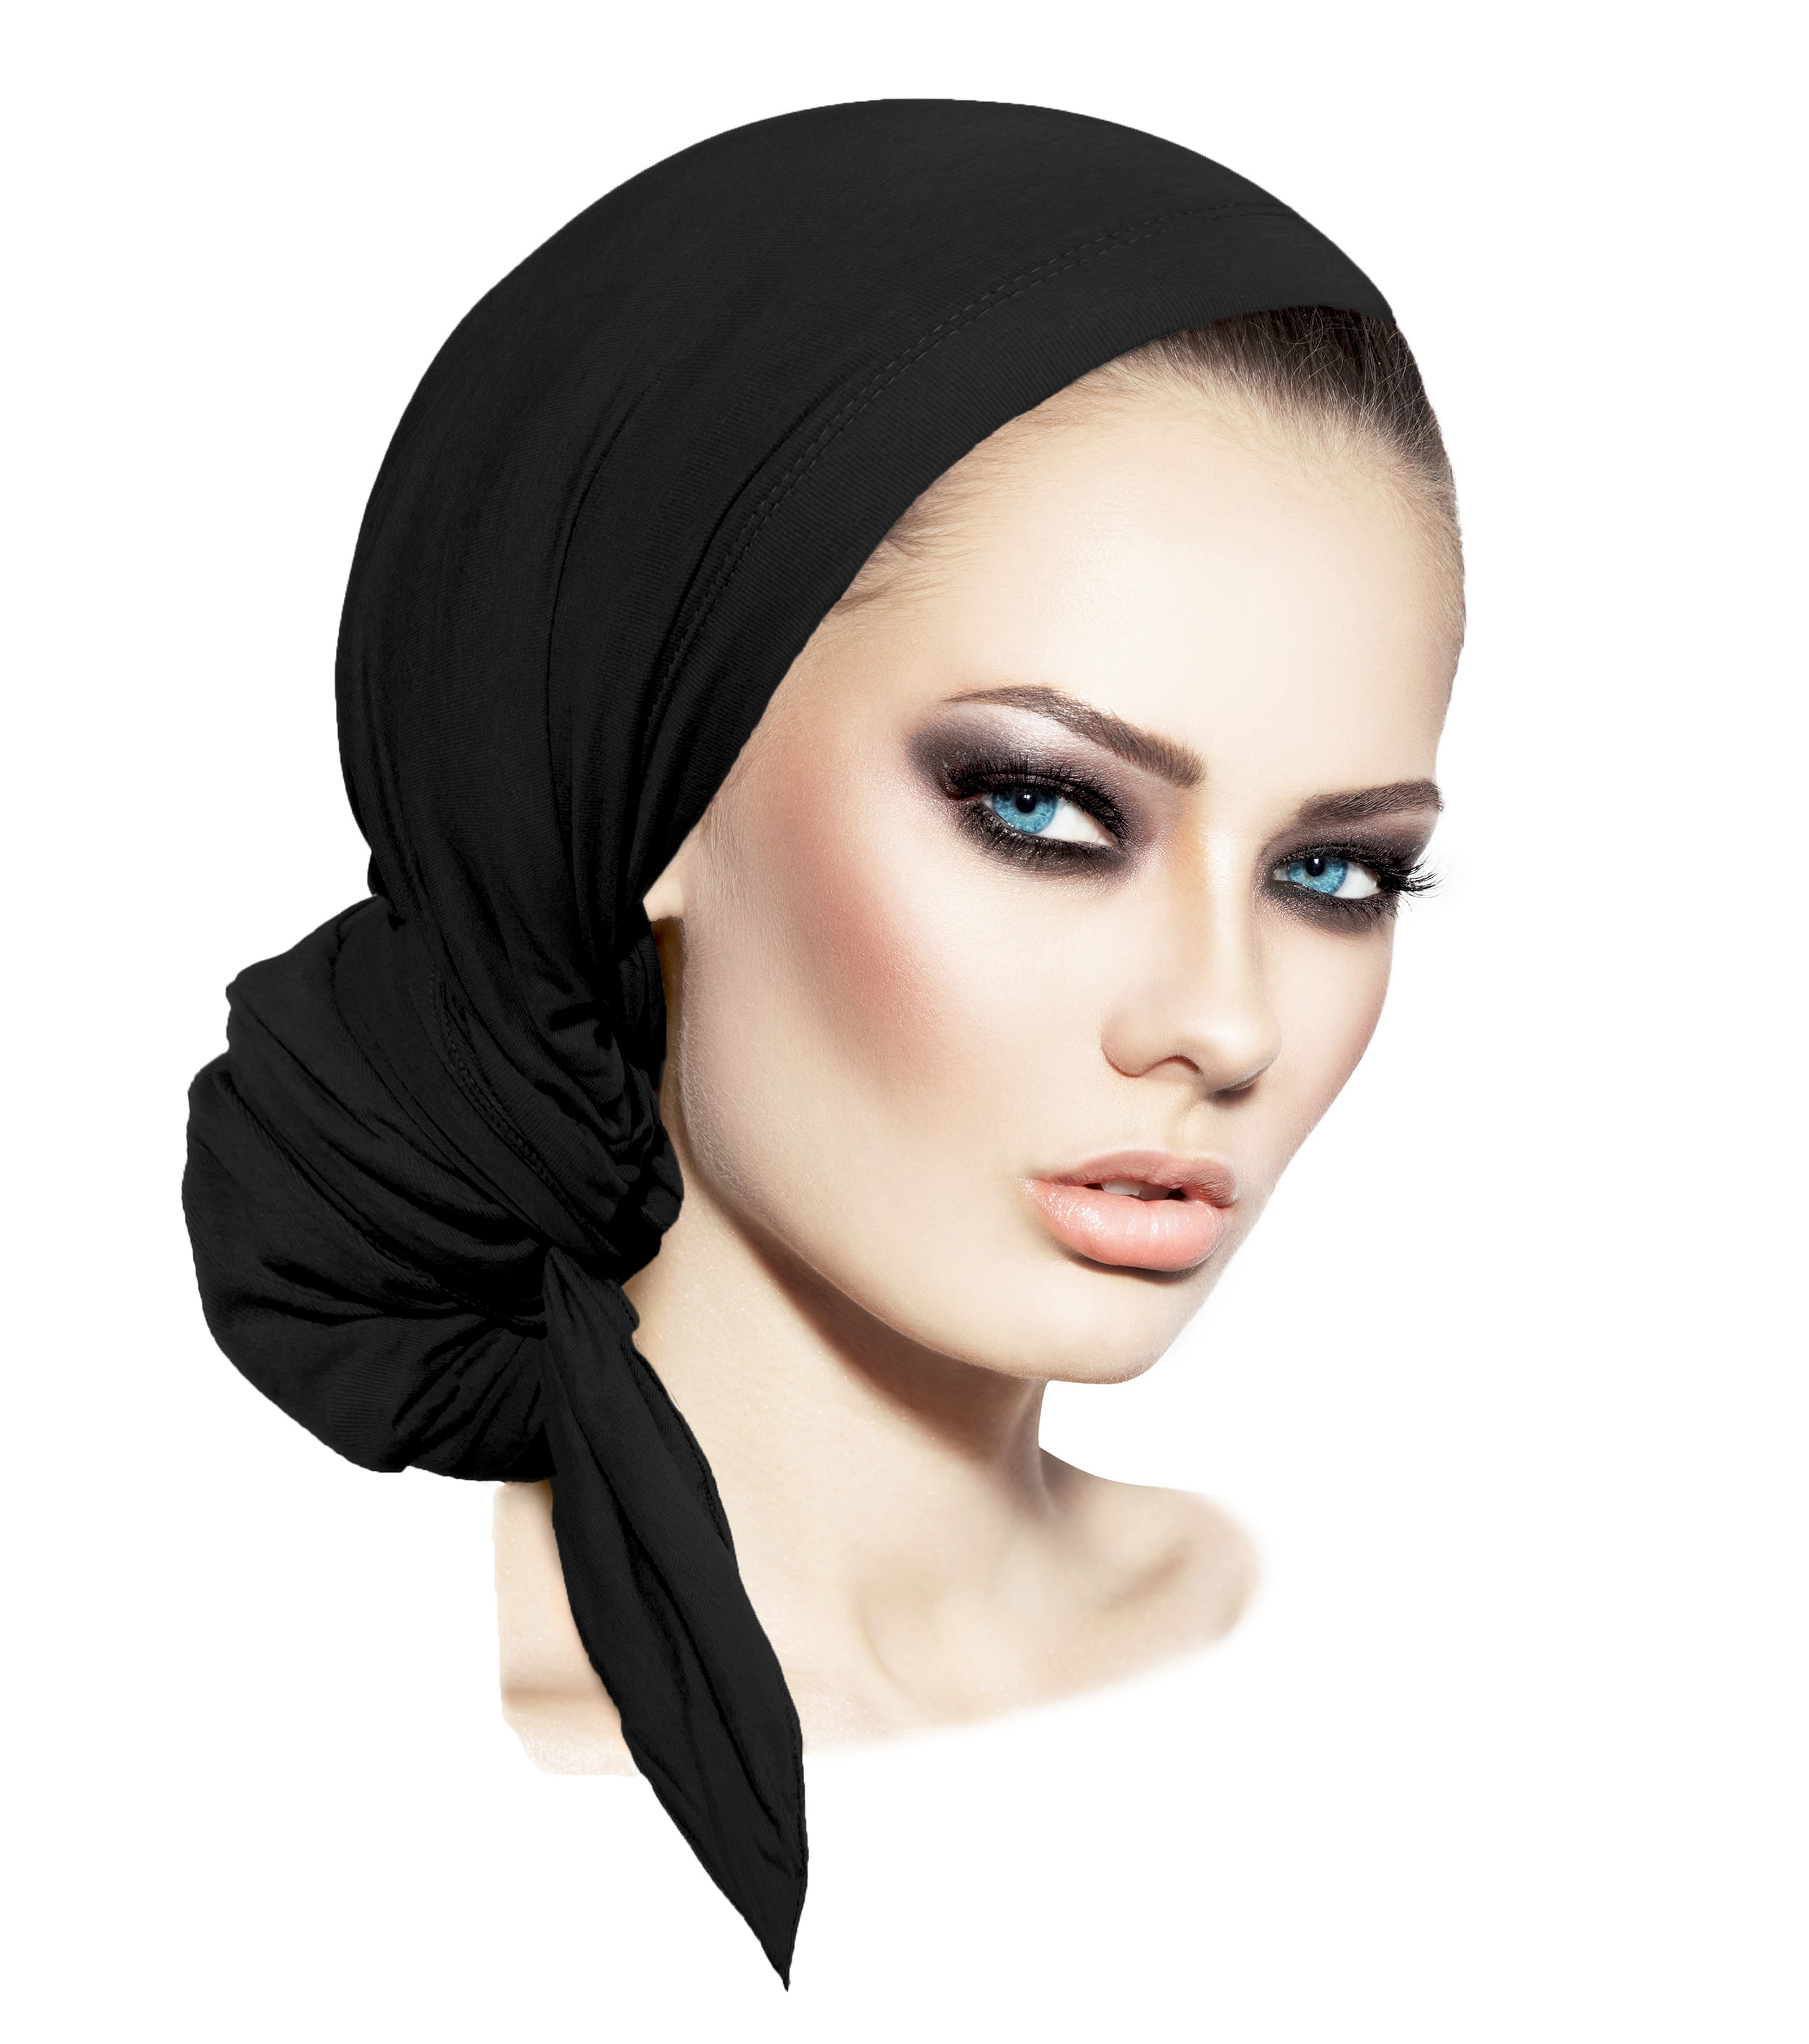 Plain cotton headscarves